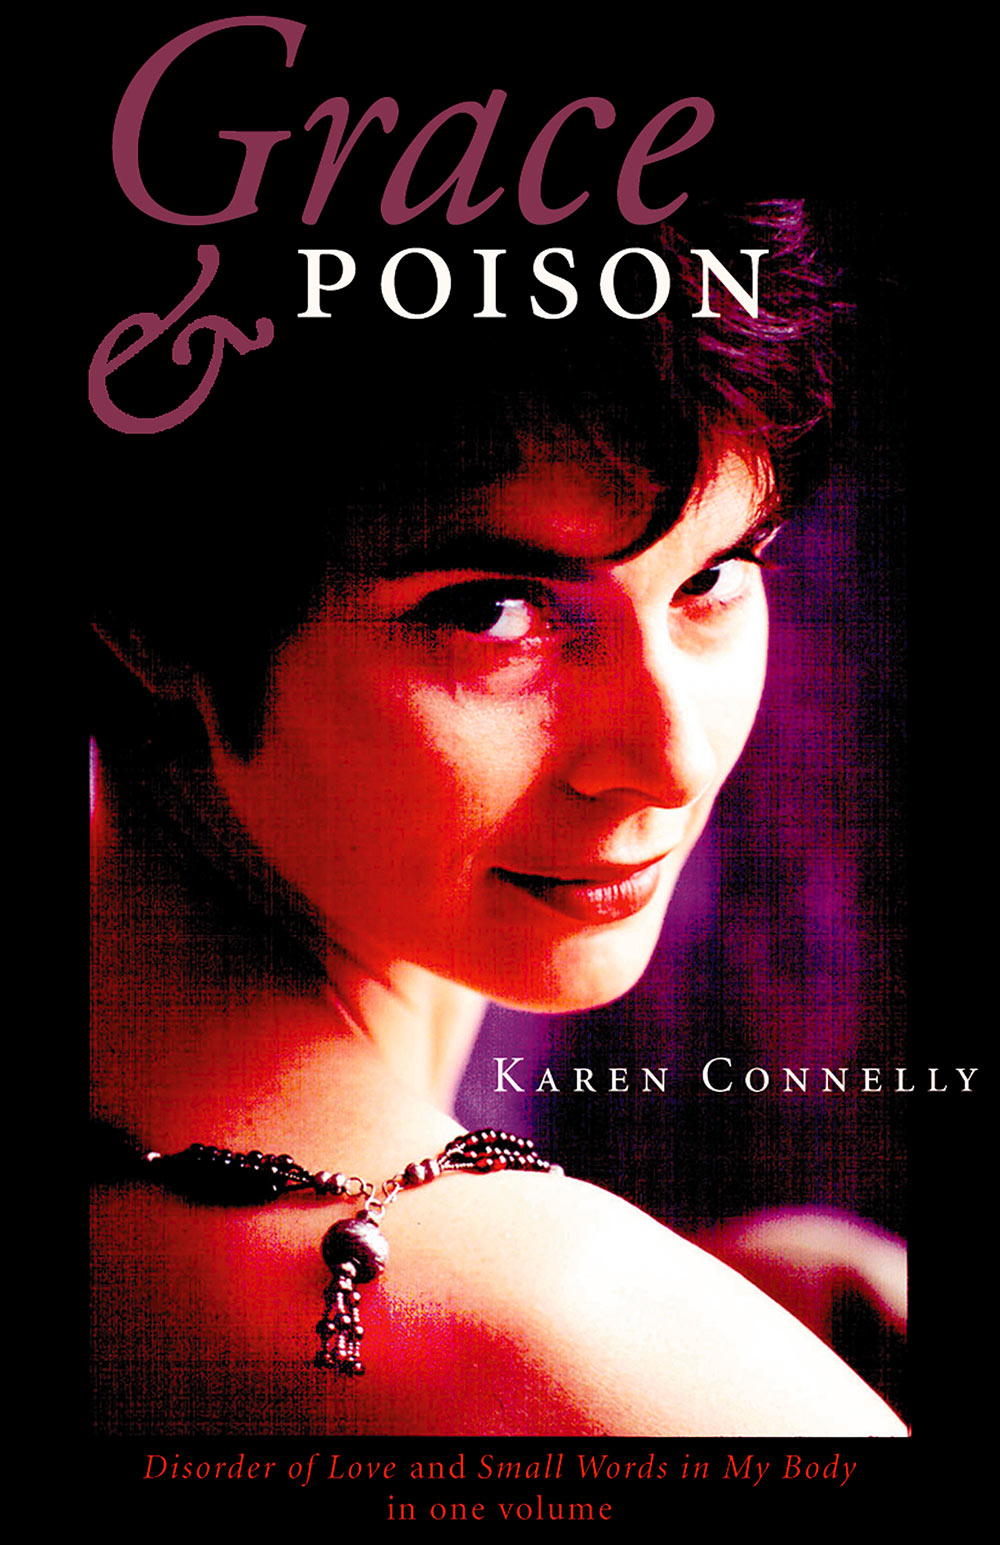 Grace & Poison by Karen Connelly